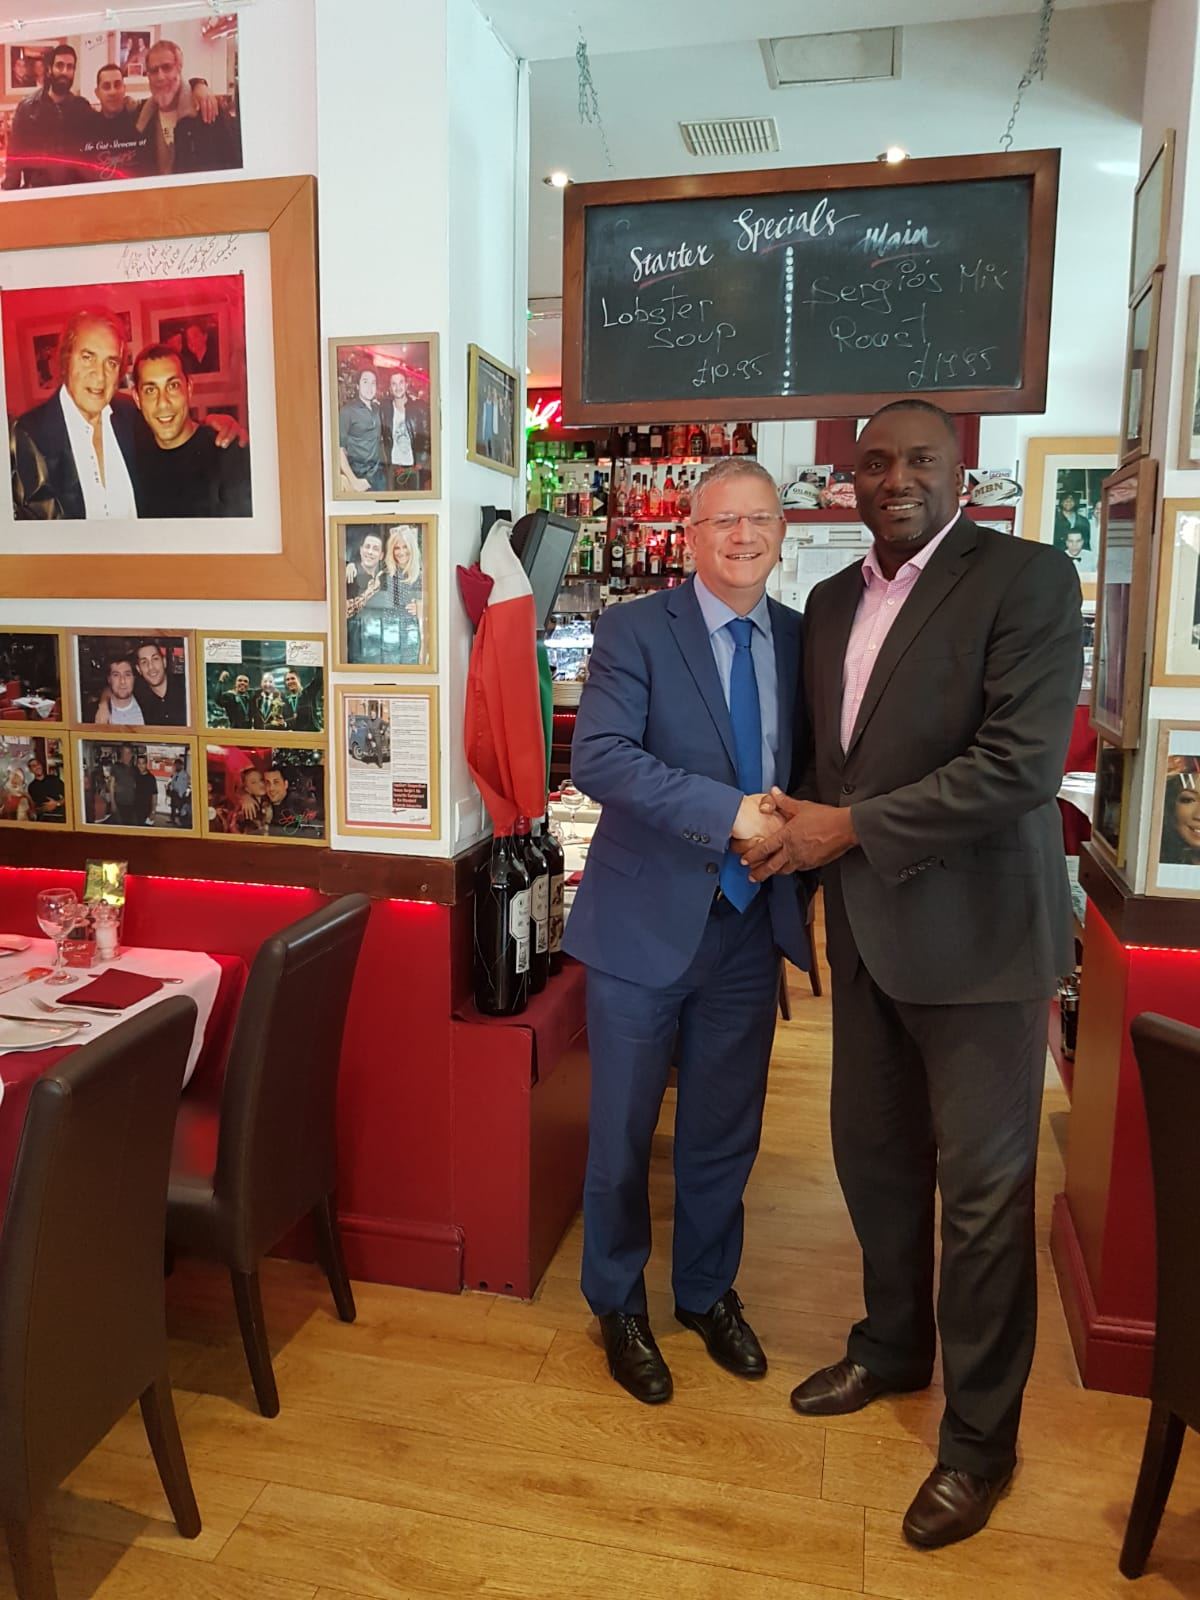 The Honourable Premier with Andrew Rosindell